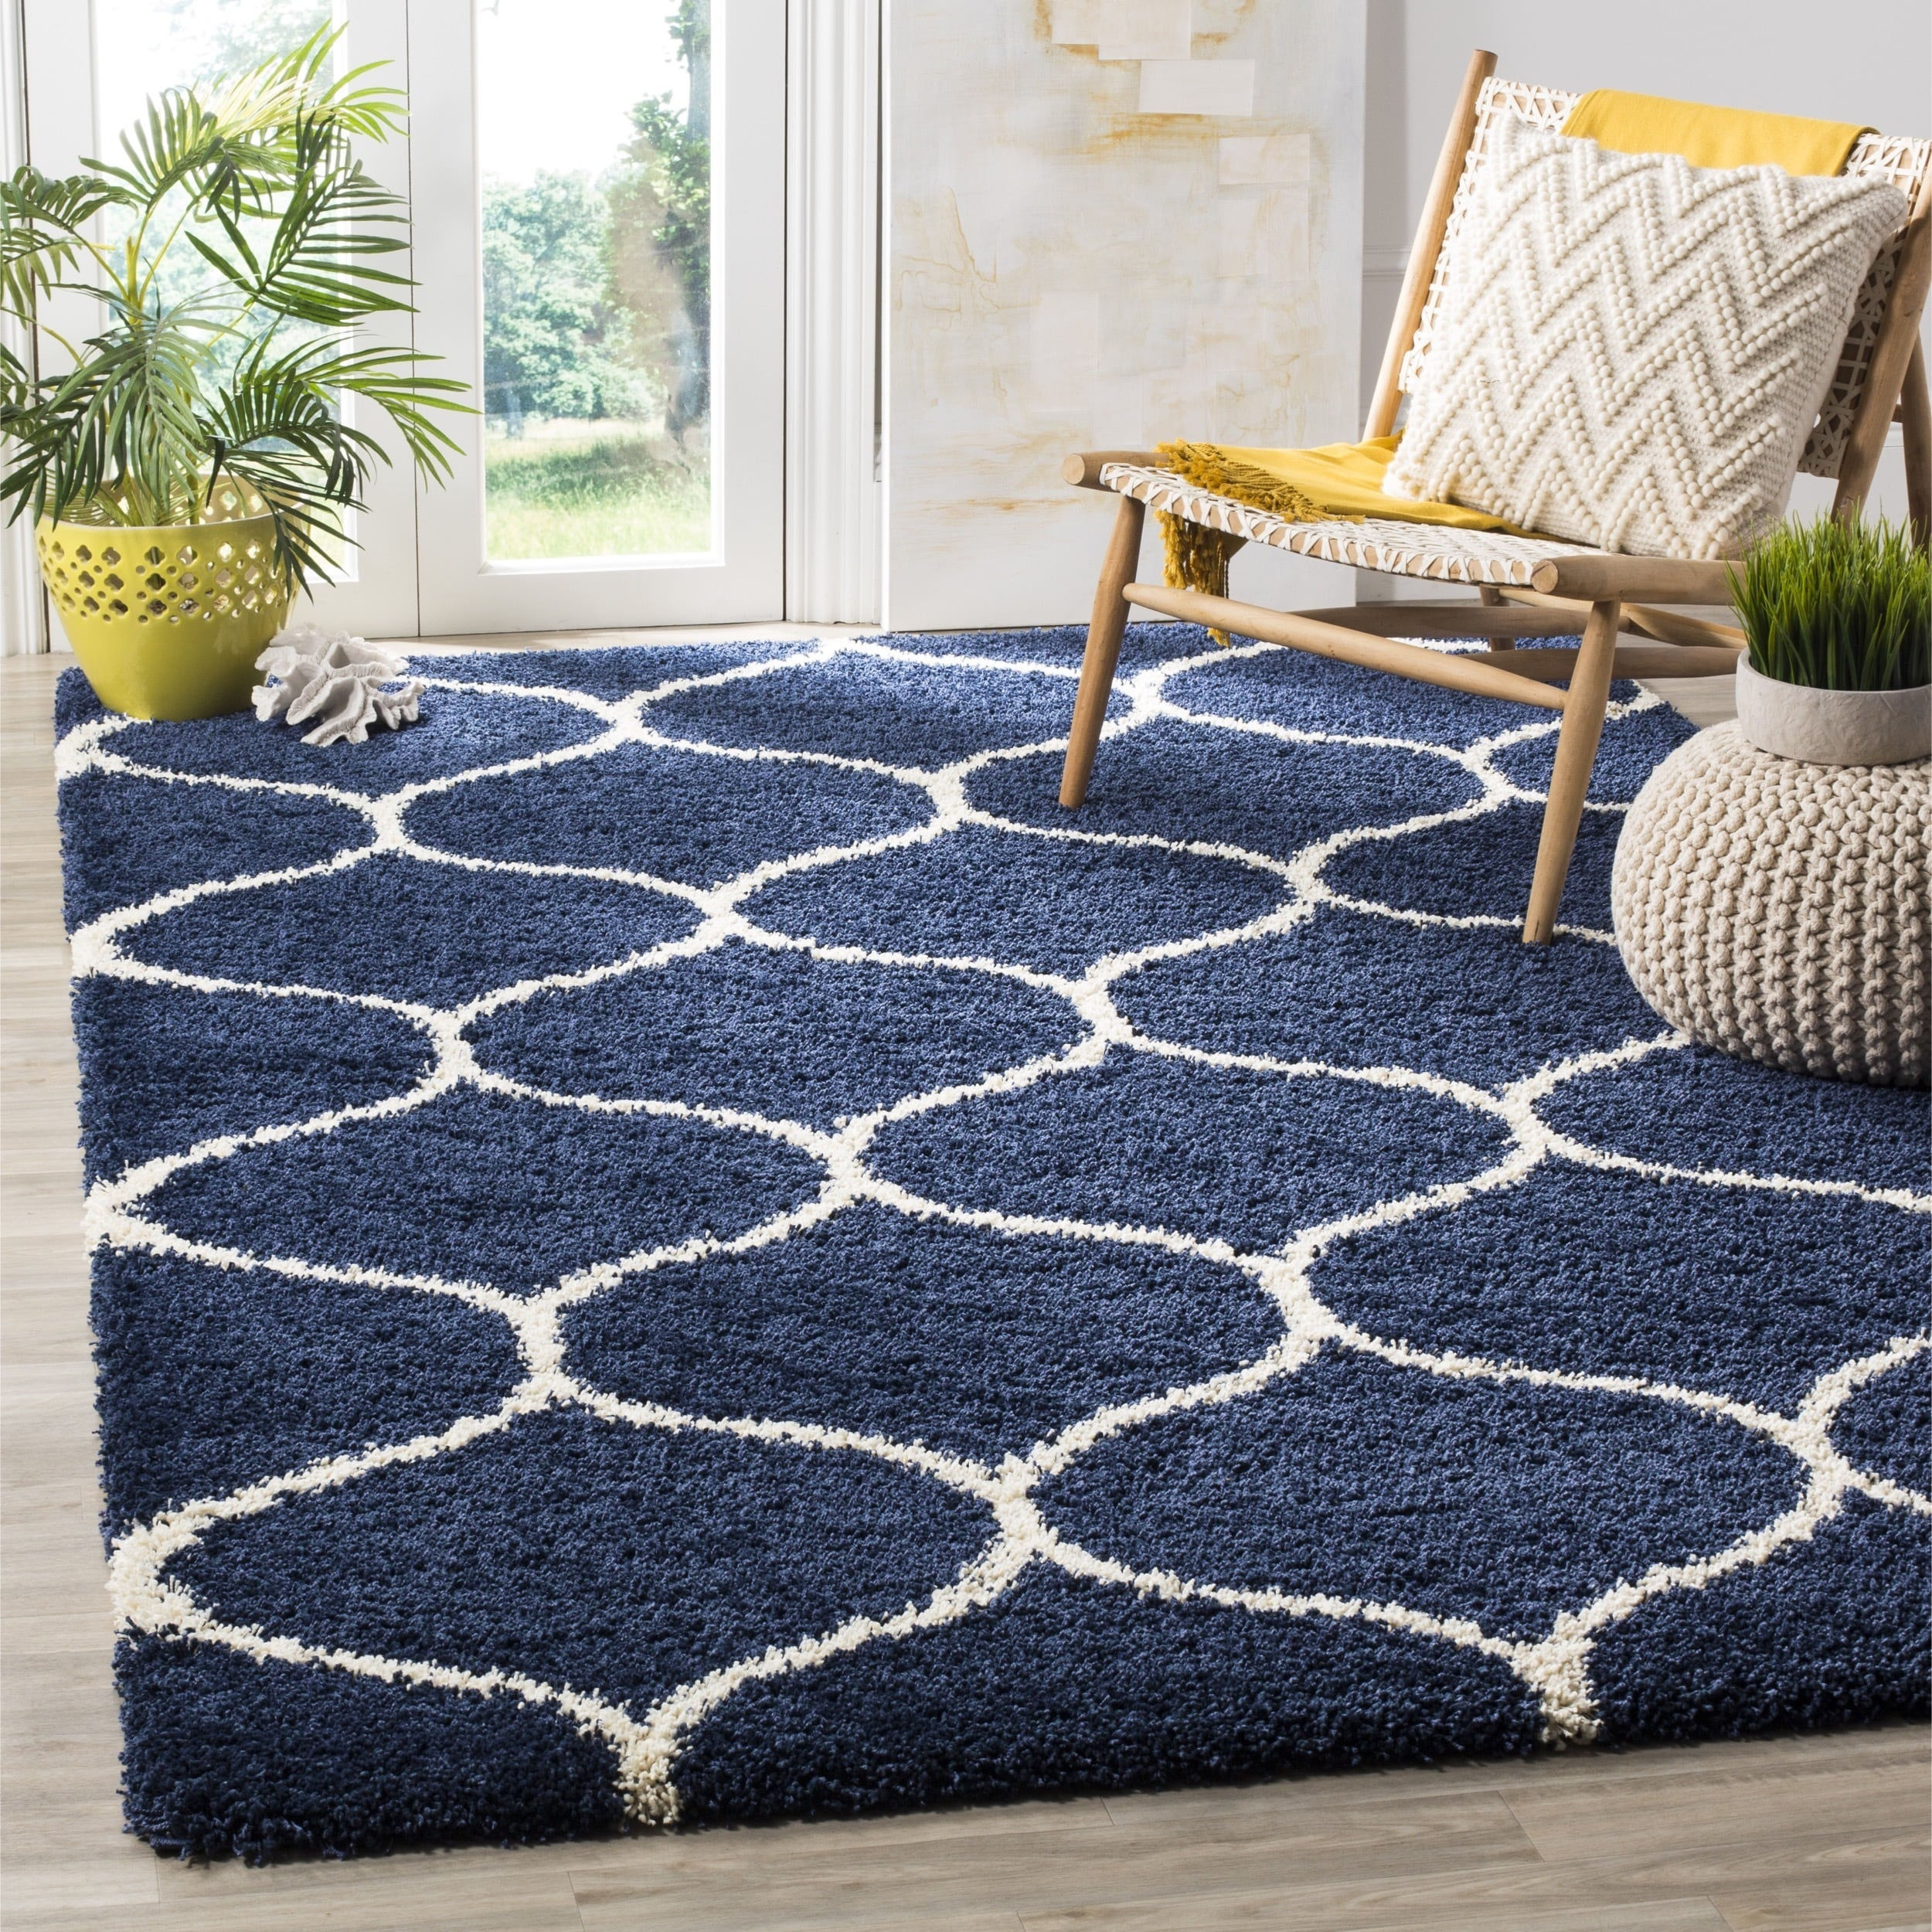 wool floor for kitchen blue buy room circular brown inch living area shag small big extra sale cheap rug by rugs large throw circle silver decoration round